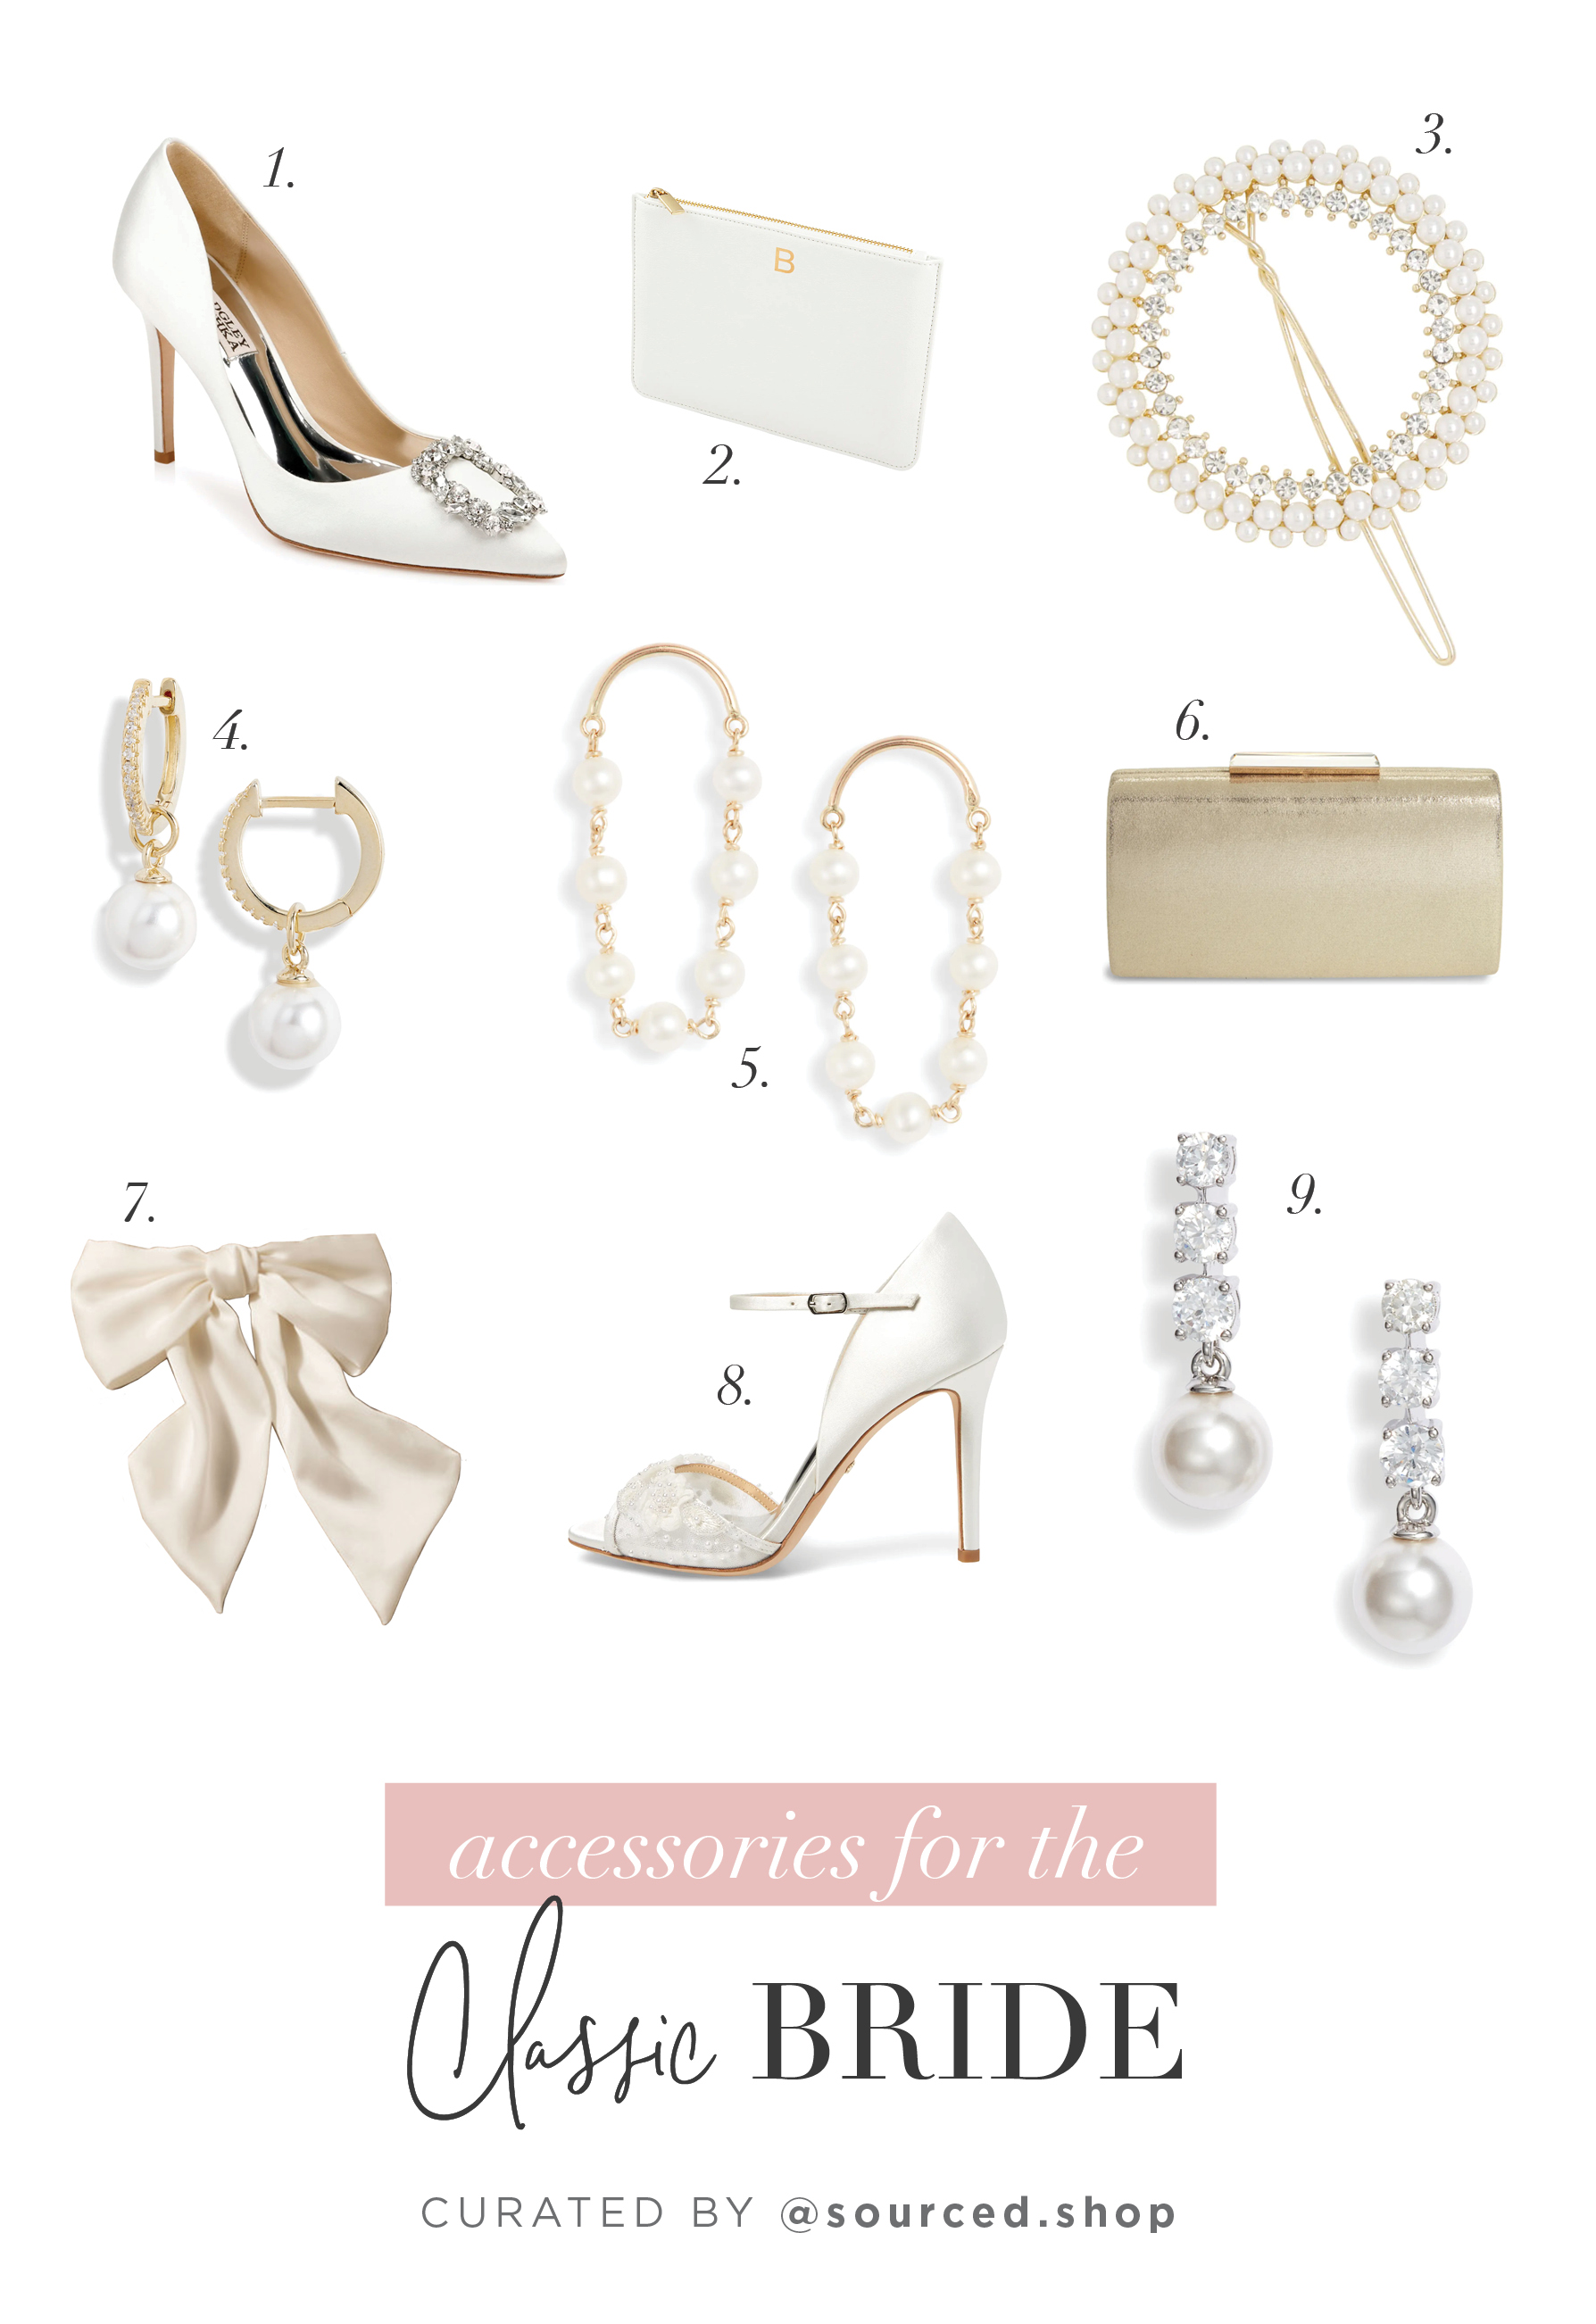 Day-Of Wedding Accessories for Each Type of Bride